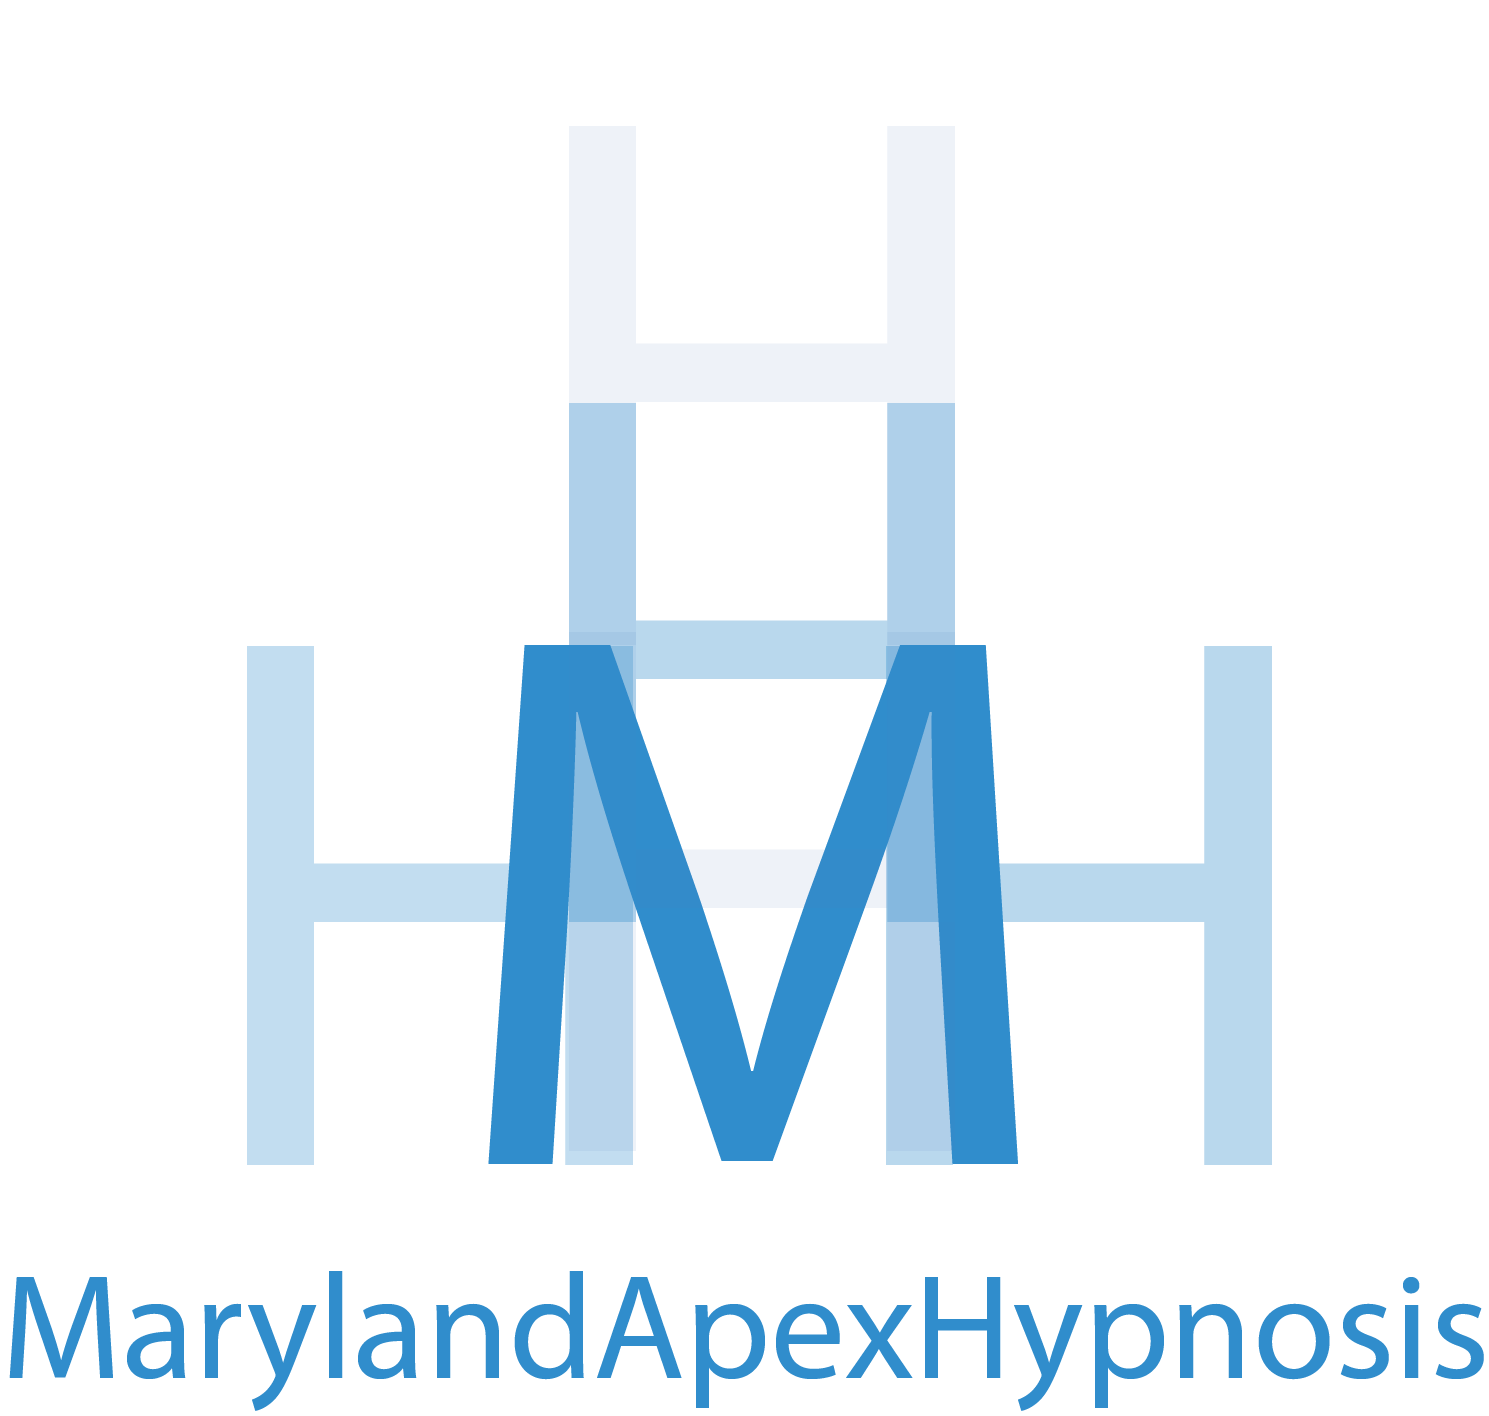 MarylandAPEXHypnosis